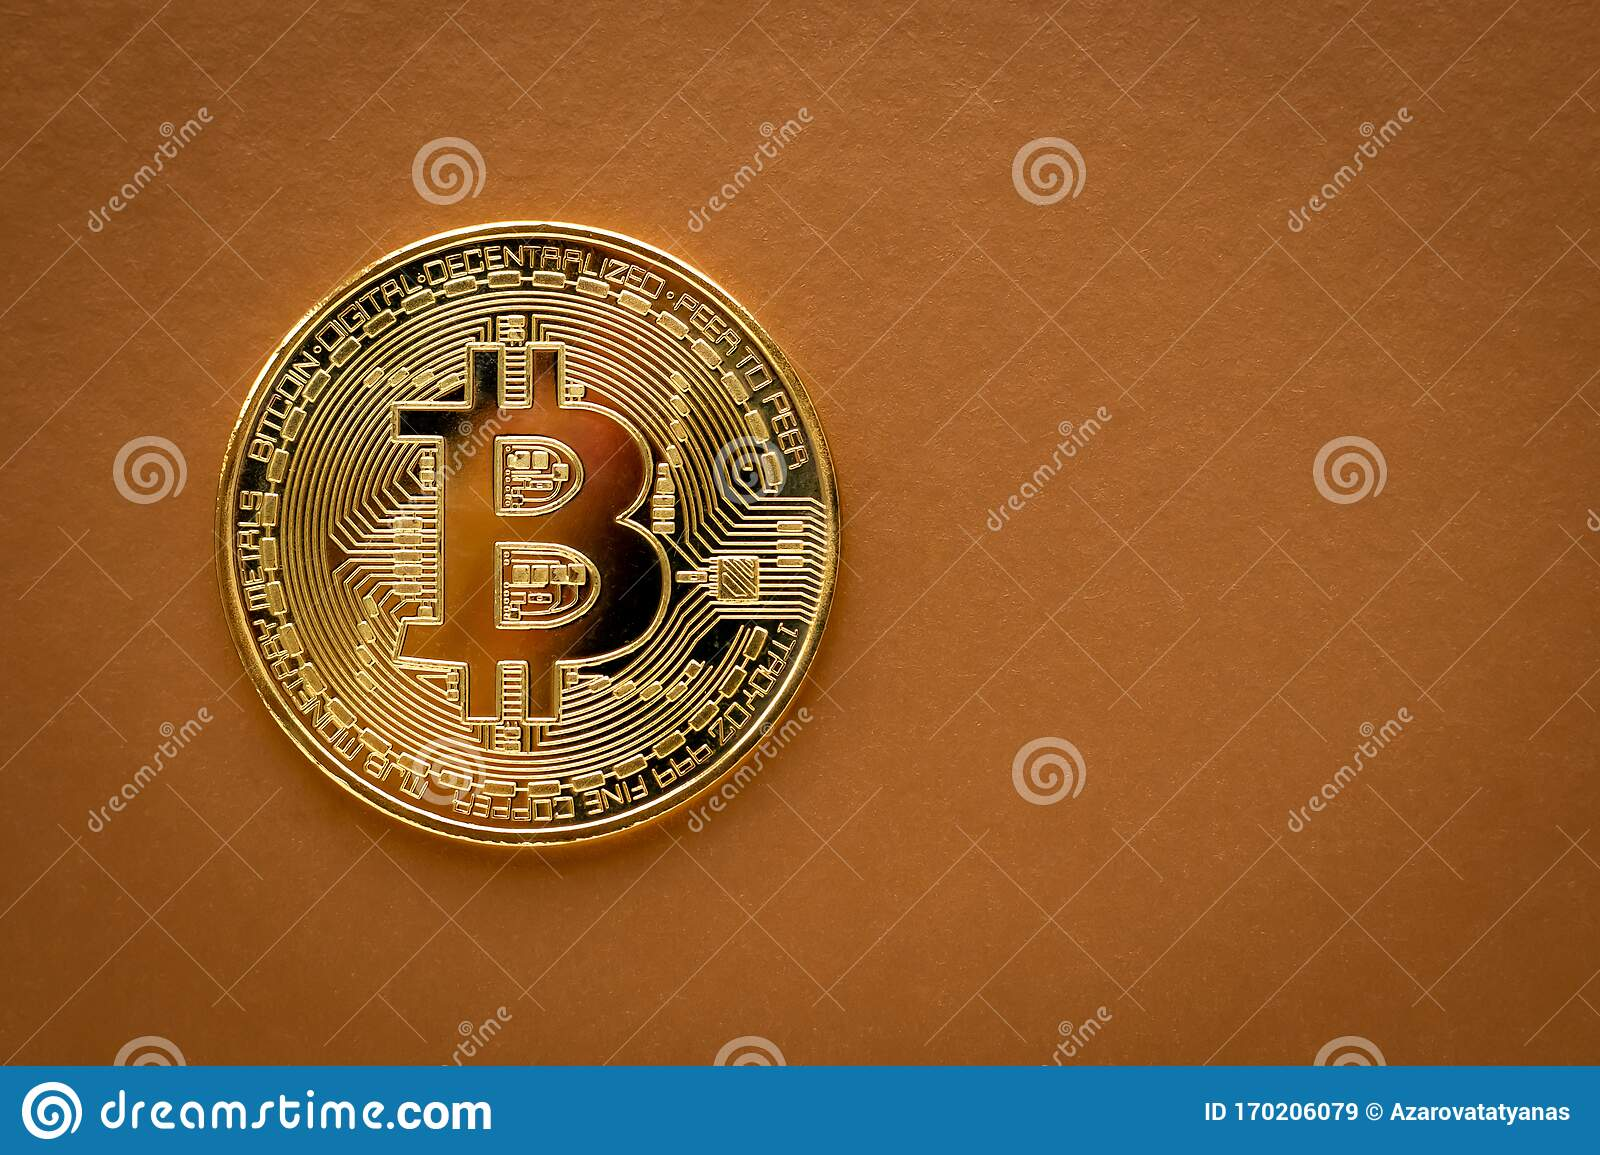 can you use cryptocurrency on e commerce